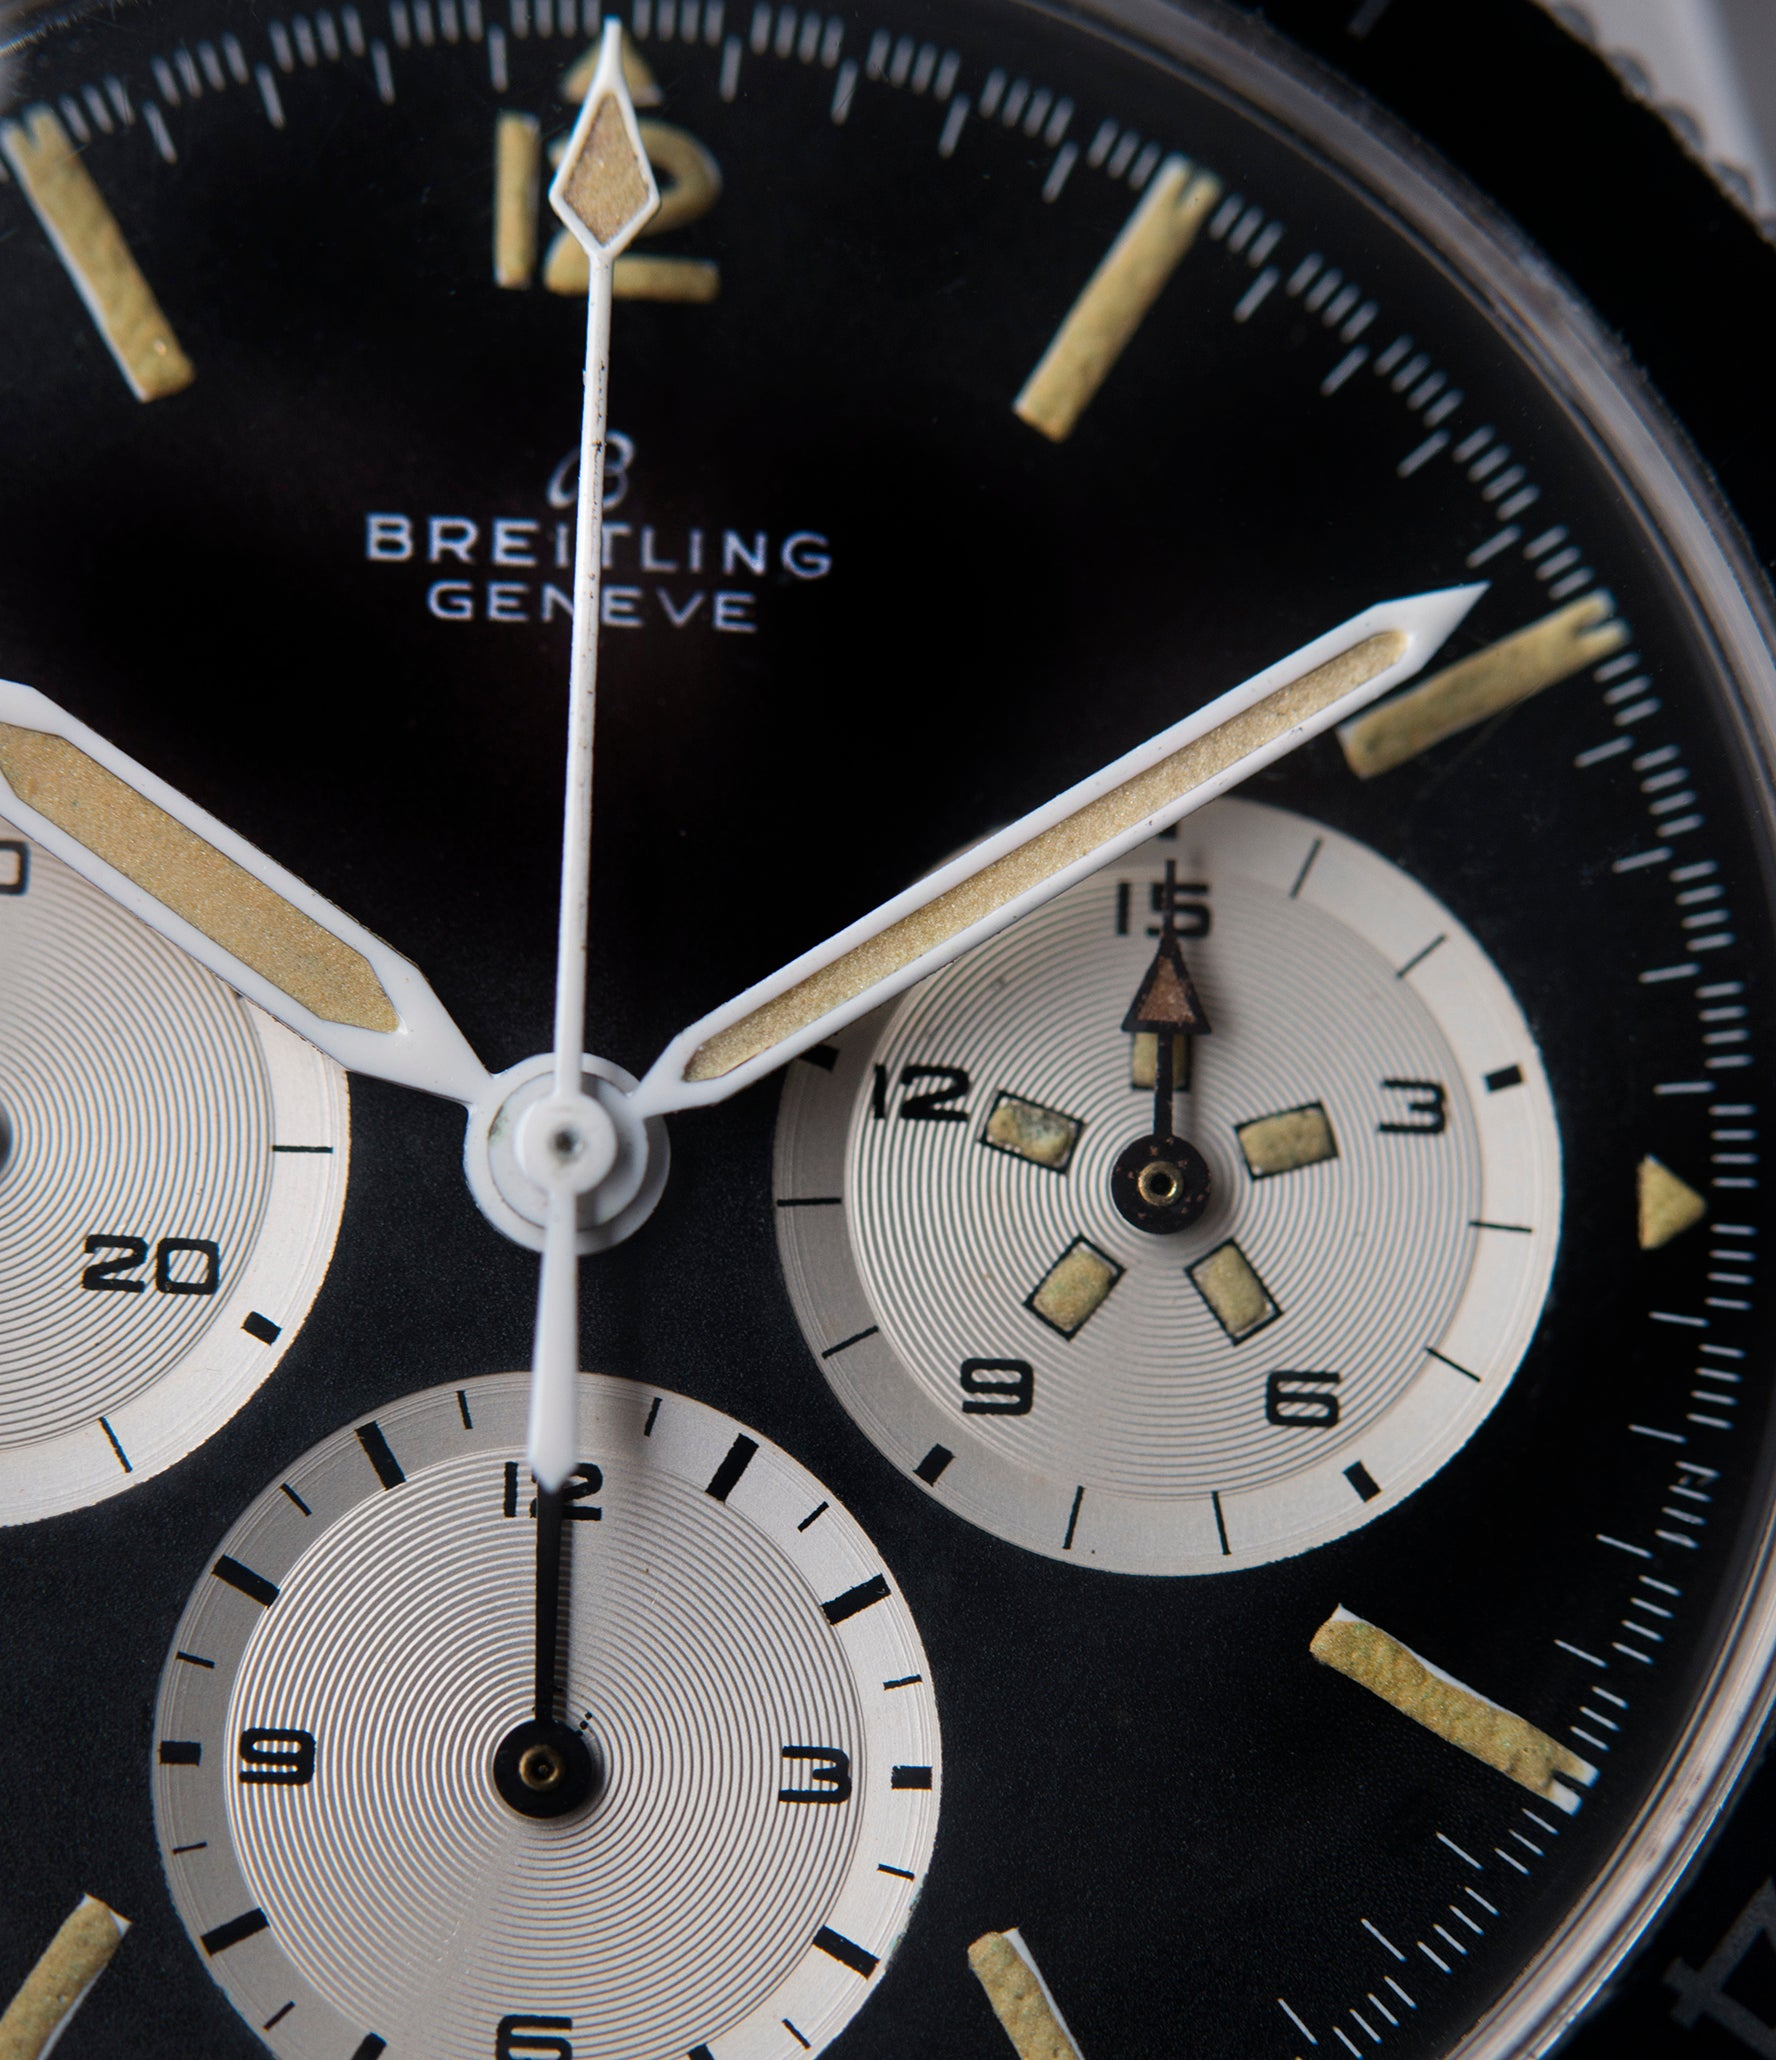 rare Breitling 765 AVI pilot steel vintage chronograph watch online at A Collected Man London UK specialist of rare vintage watches